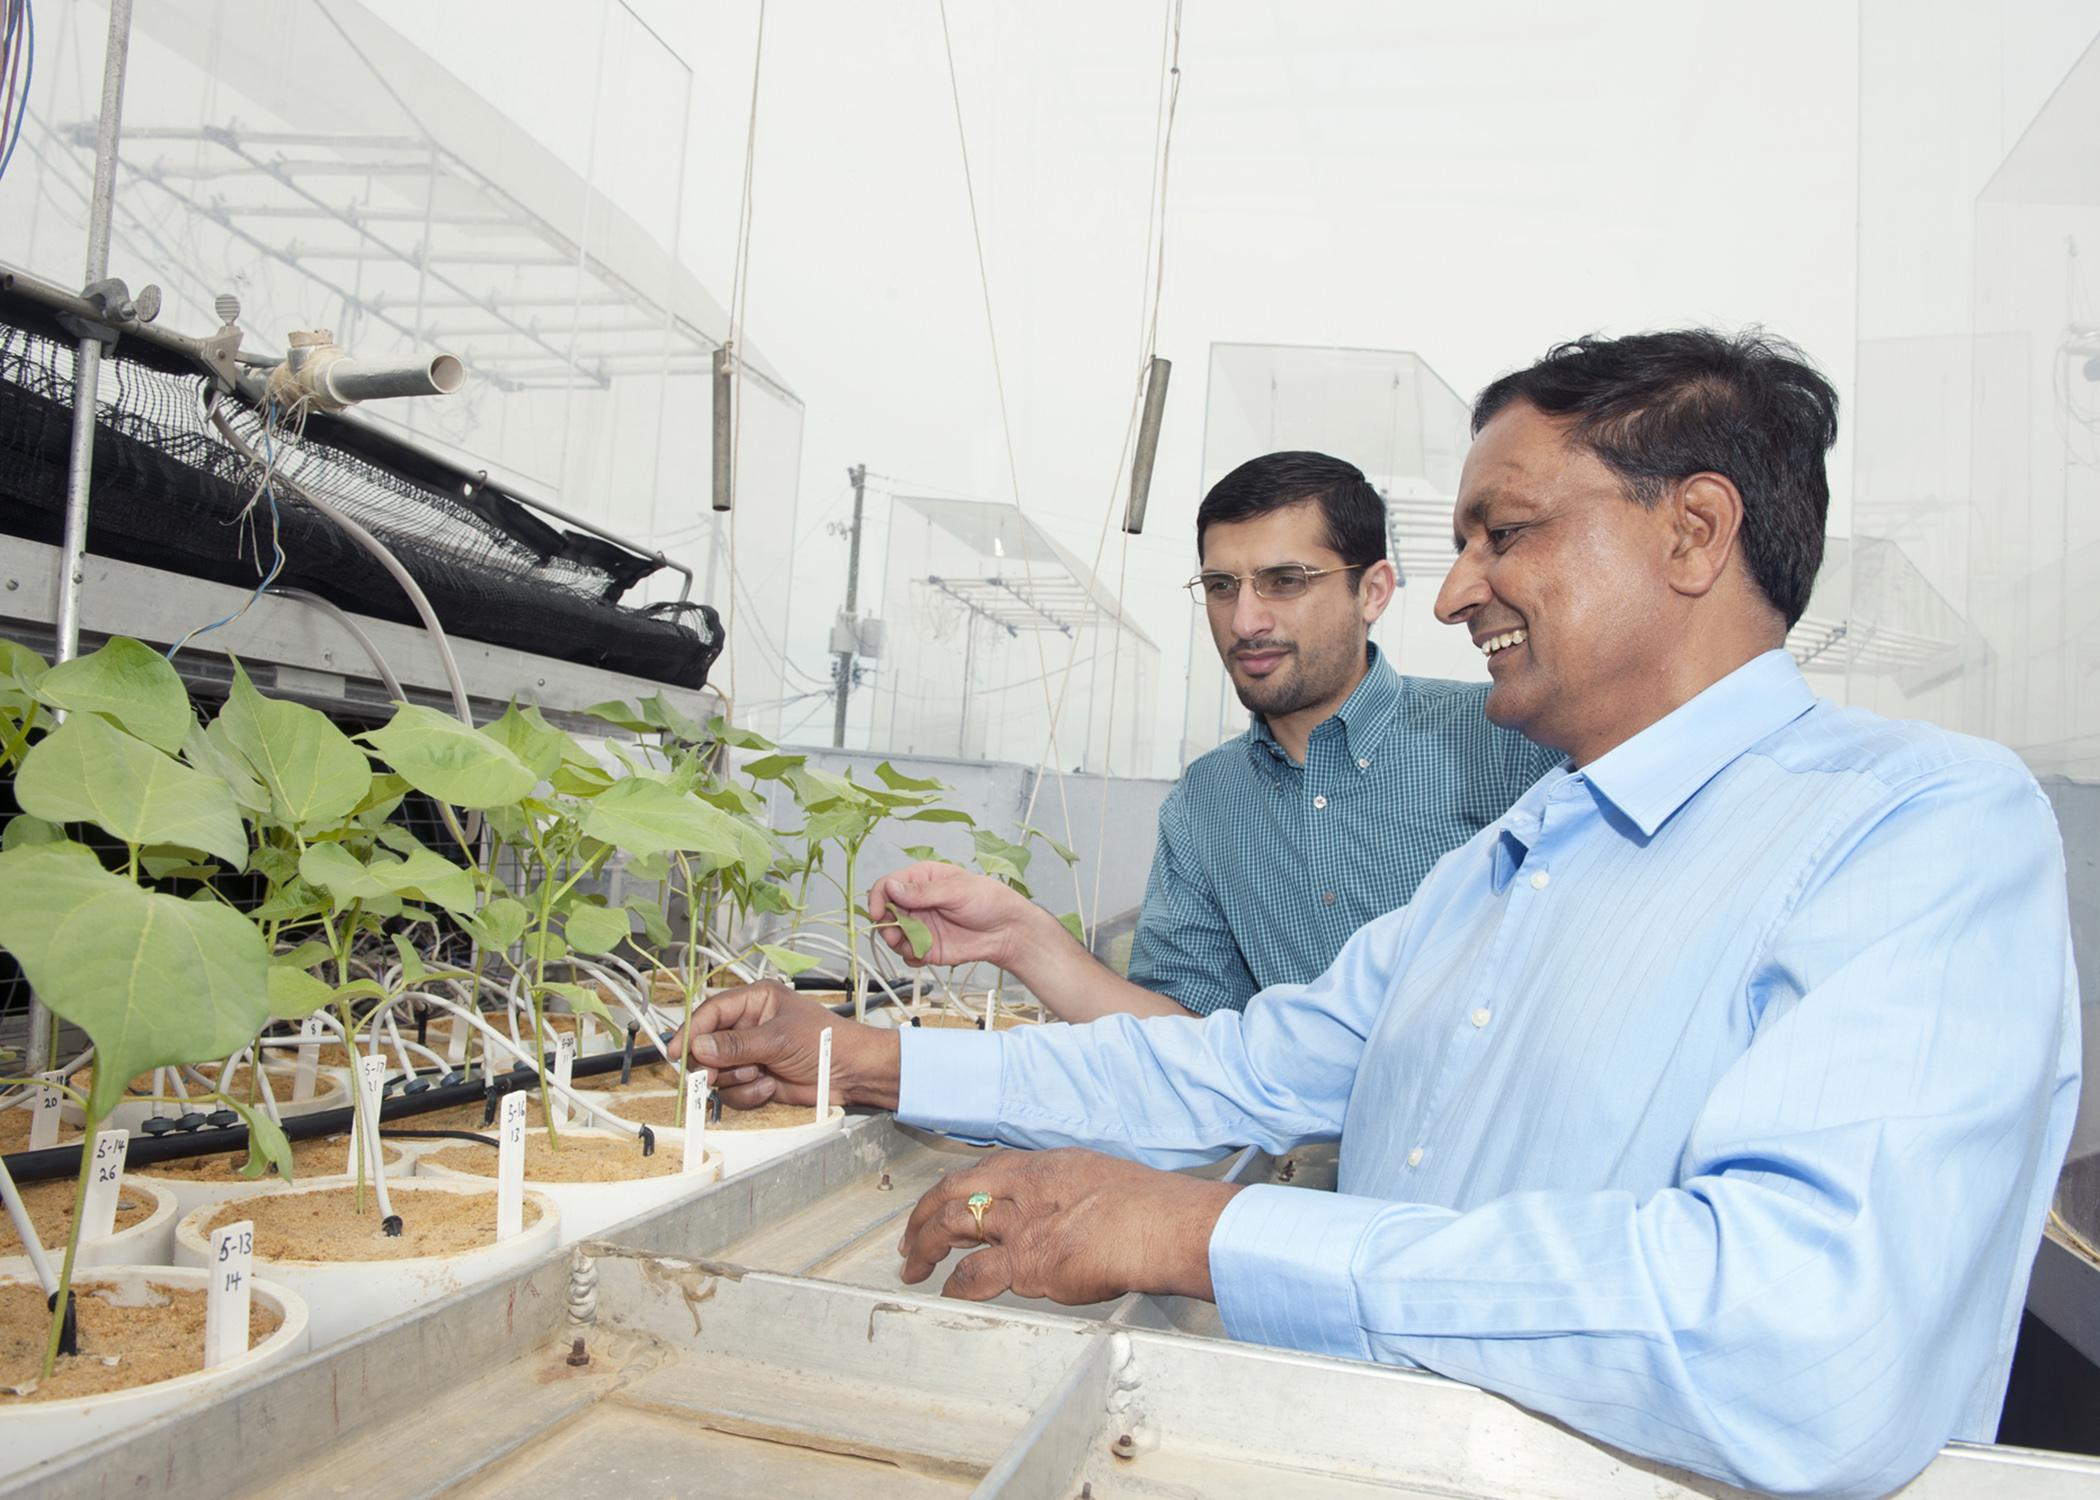 Mississippi State University professor K. Raja Reddy, foreground, shows Omar Ali, a doctoral student from Iraq, cotton plants growing in the Soil-Plant-Atmosphere-Research unit at the R.R. Foil Plant Research Center on May 8, 2014. (Photo by MSU Office of Public Affairs/Beth Wynn)